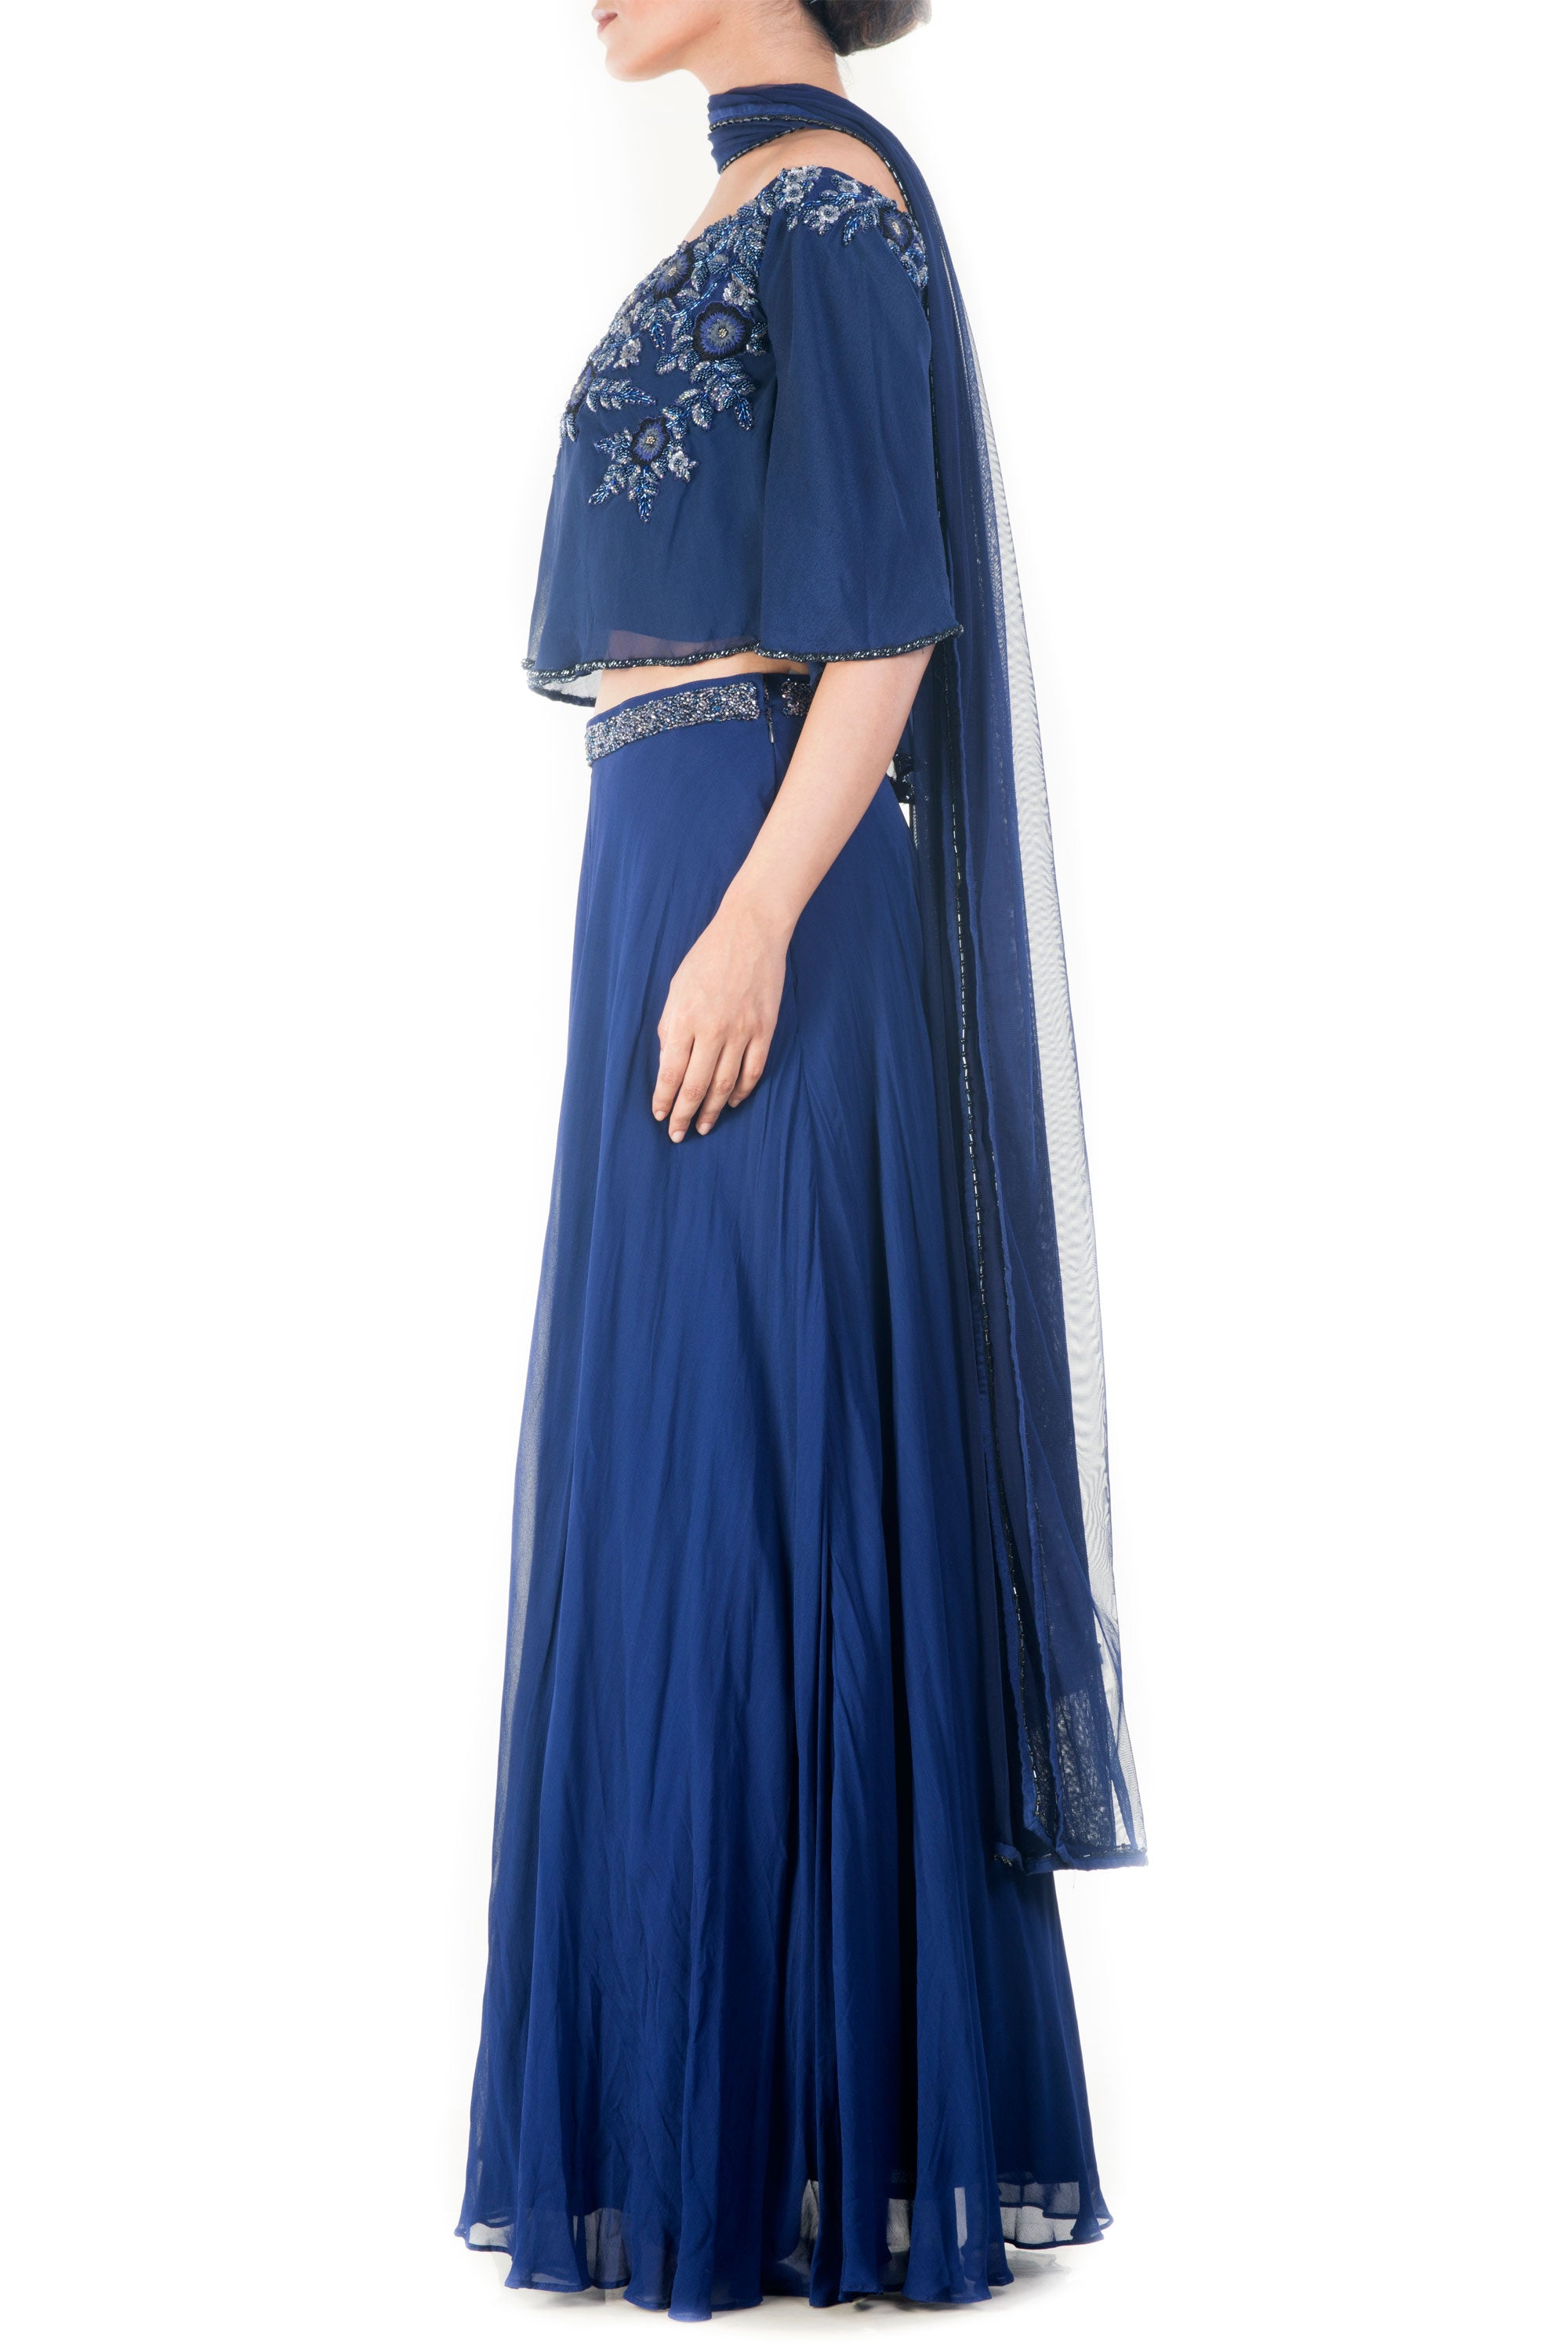 069b9405796429 ... Royal Blue Off Shoulder Cape Lehenga Set Side ...